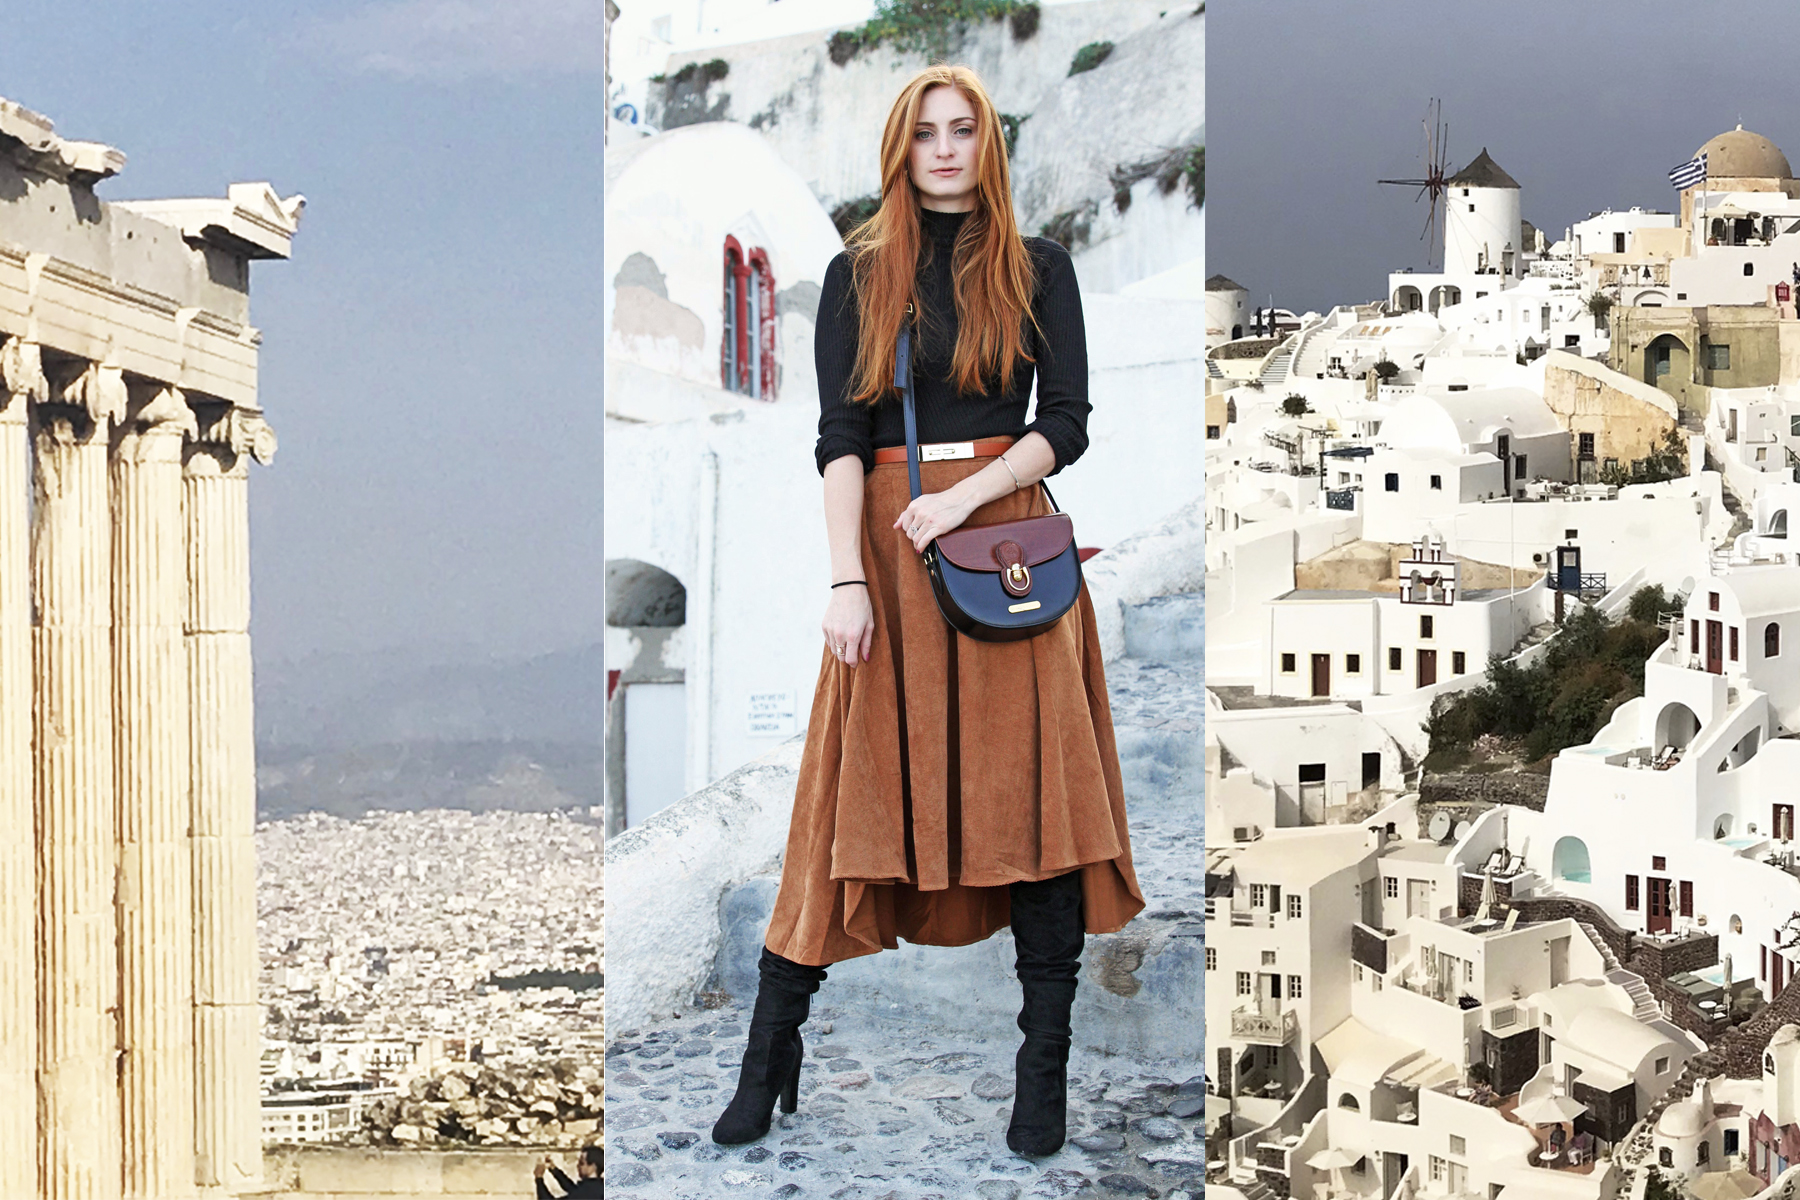 Athens, greece, acropolis, outfit with brown skirt and black top, Santorini white houses,